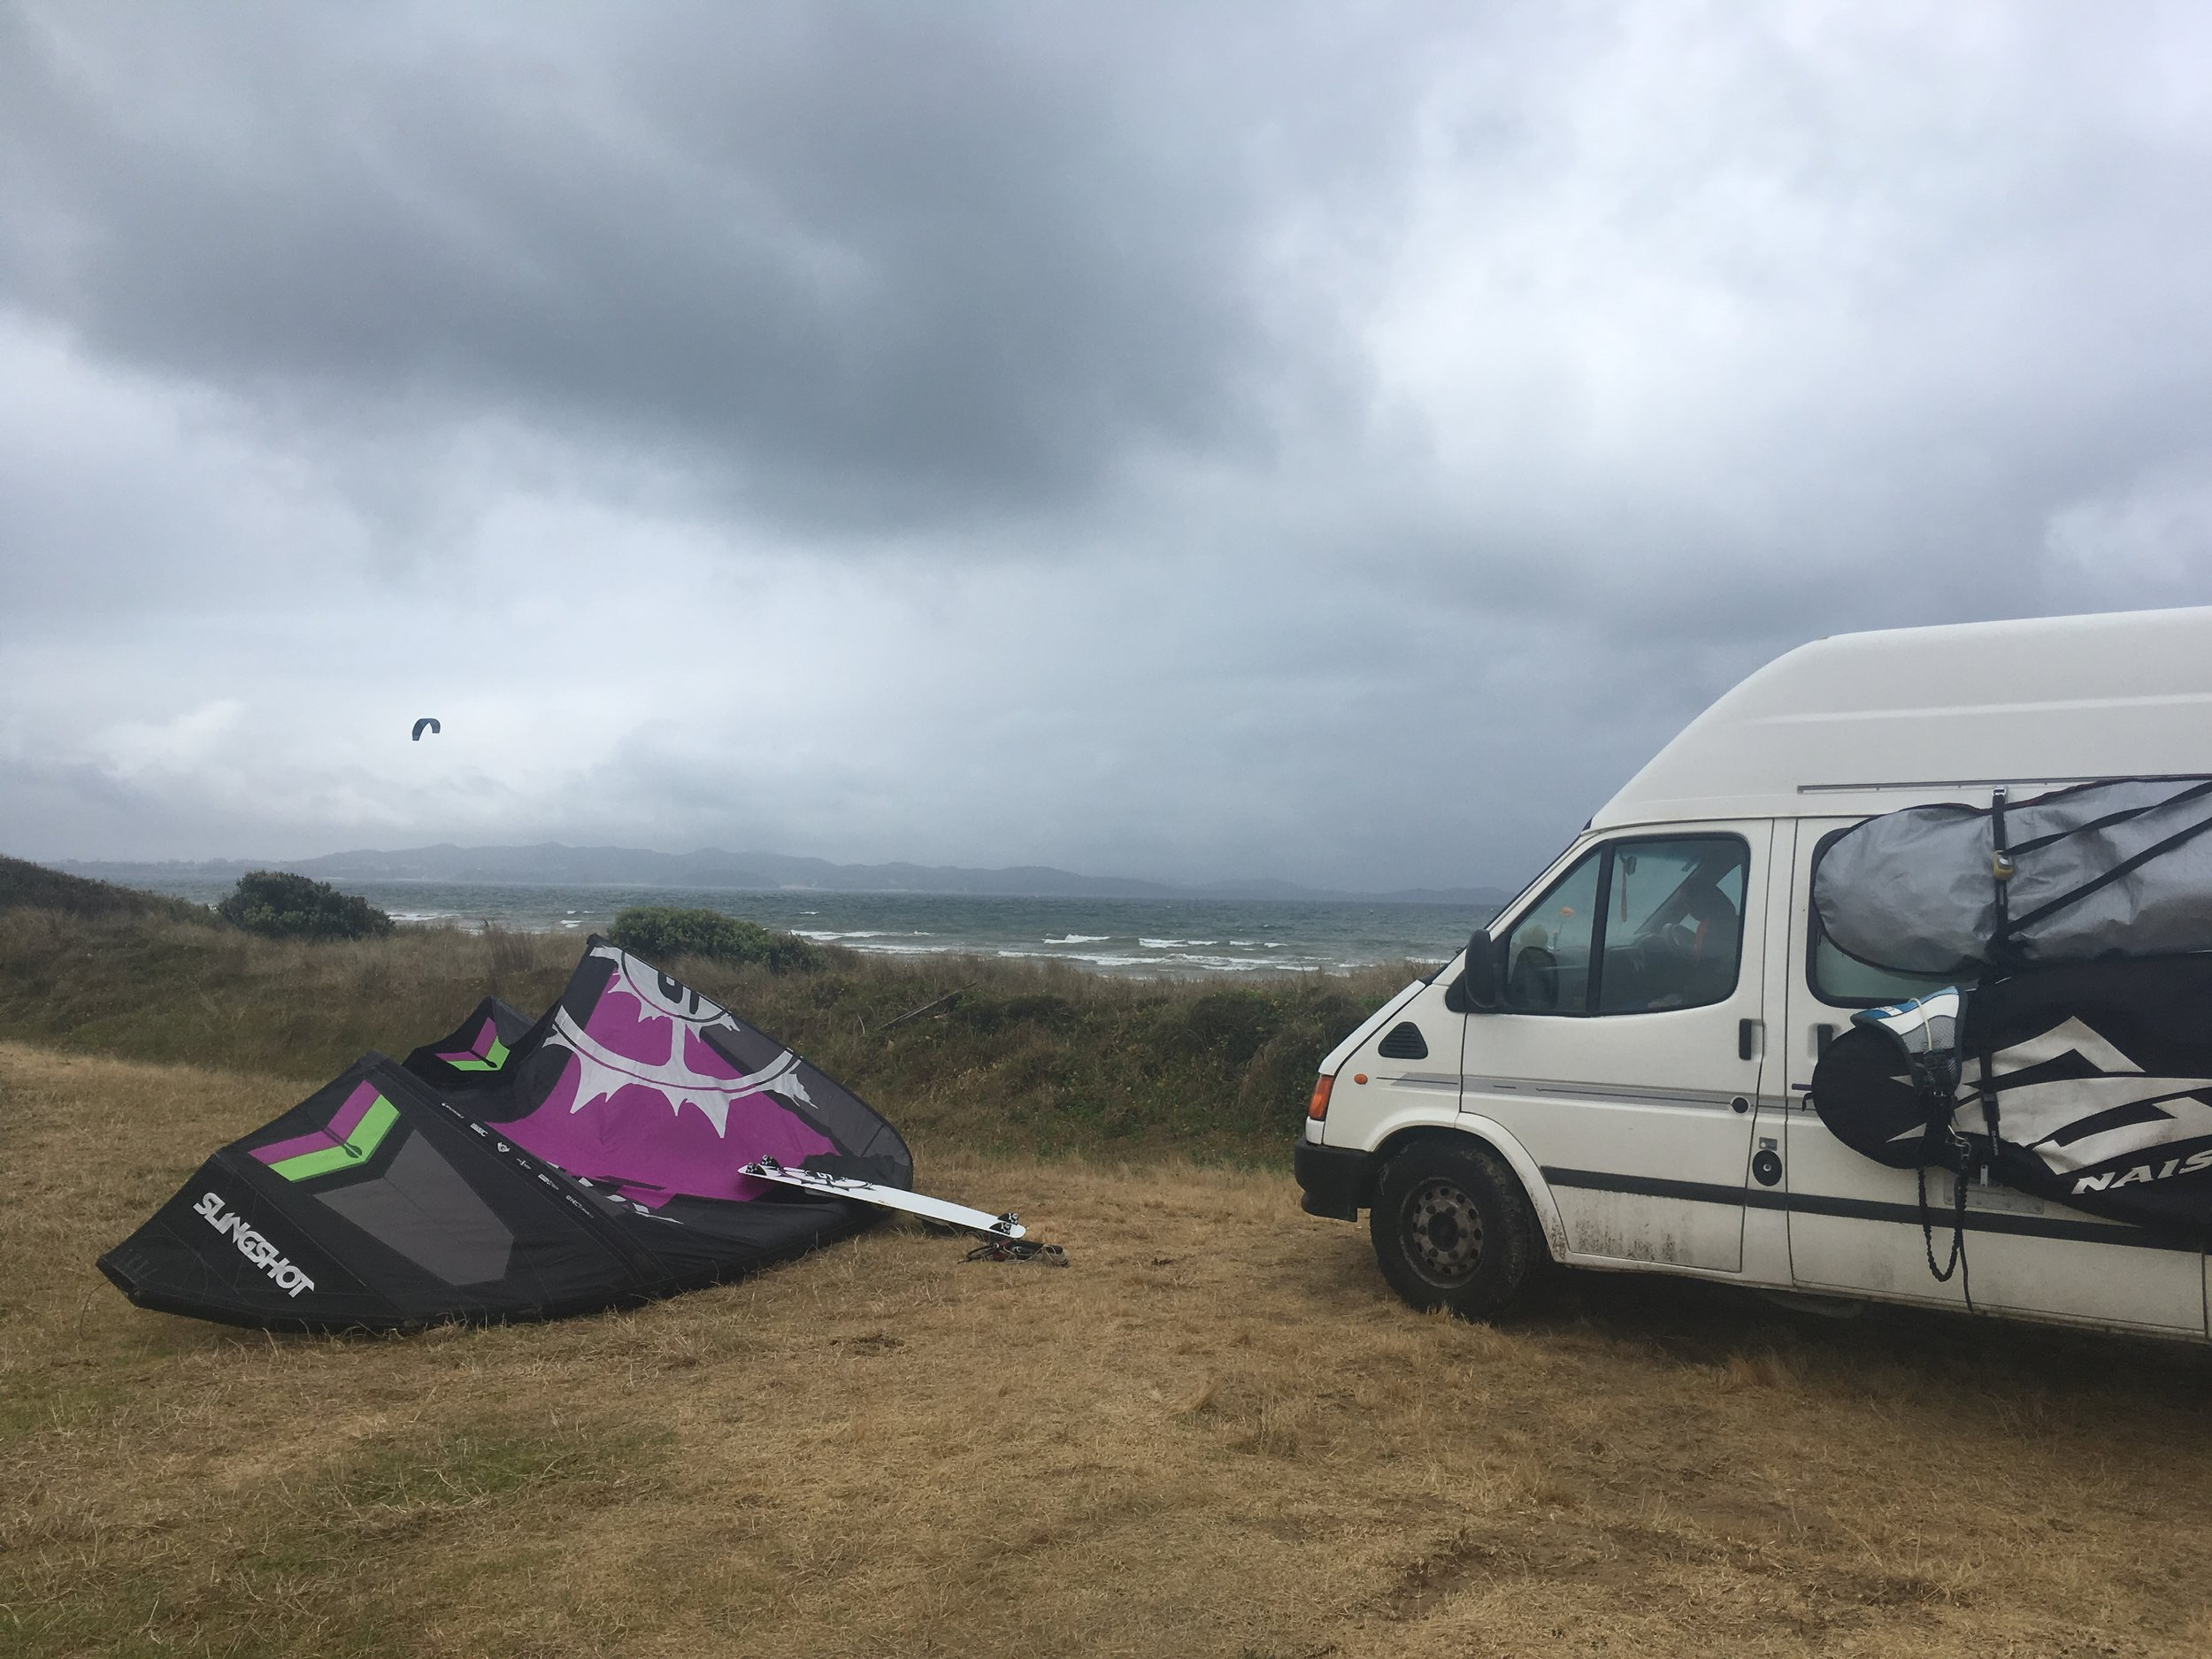 A windy day at Tokerau Beach. Got to love a camping spot where you can kite right in front of your van!